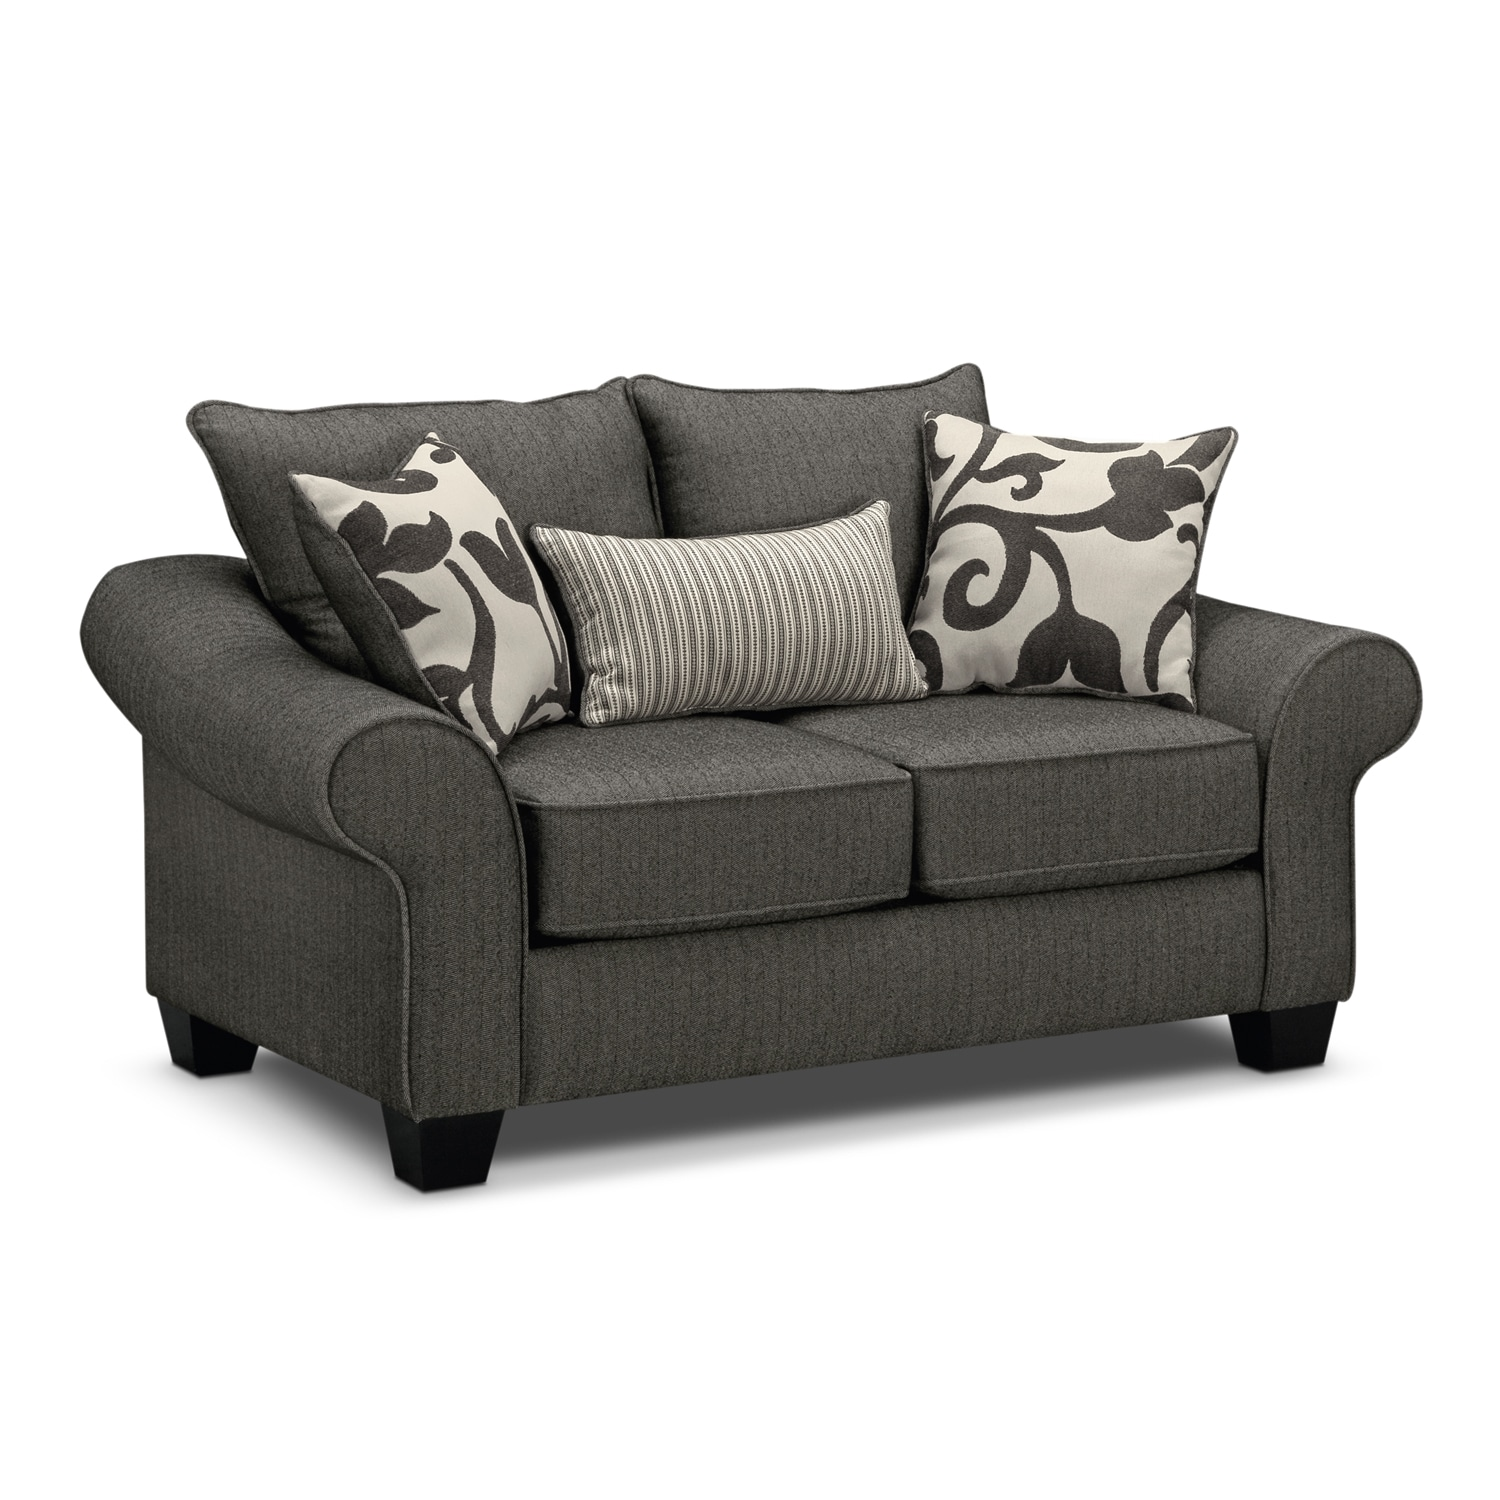 Colette loveseat gray value city furniture Couches and loveseats